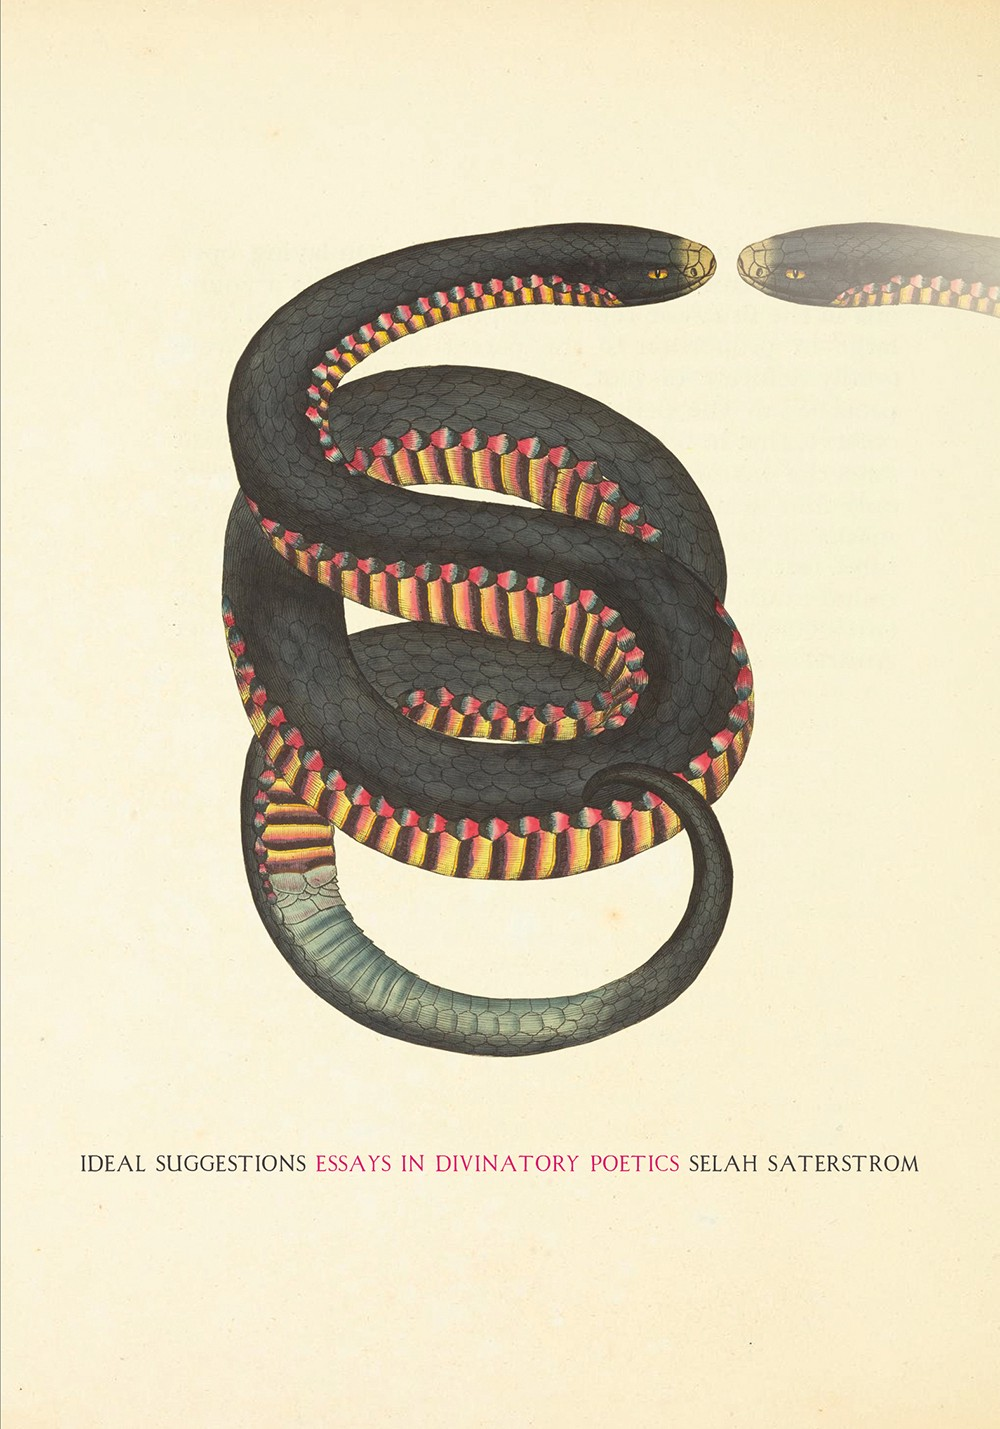 REVIEW: Ideal Suggestions: Essays in Divinatory Poetics by